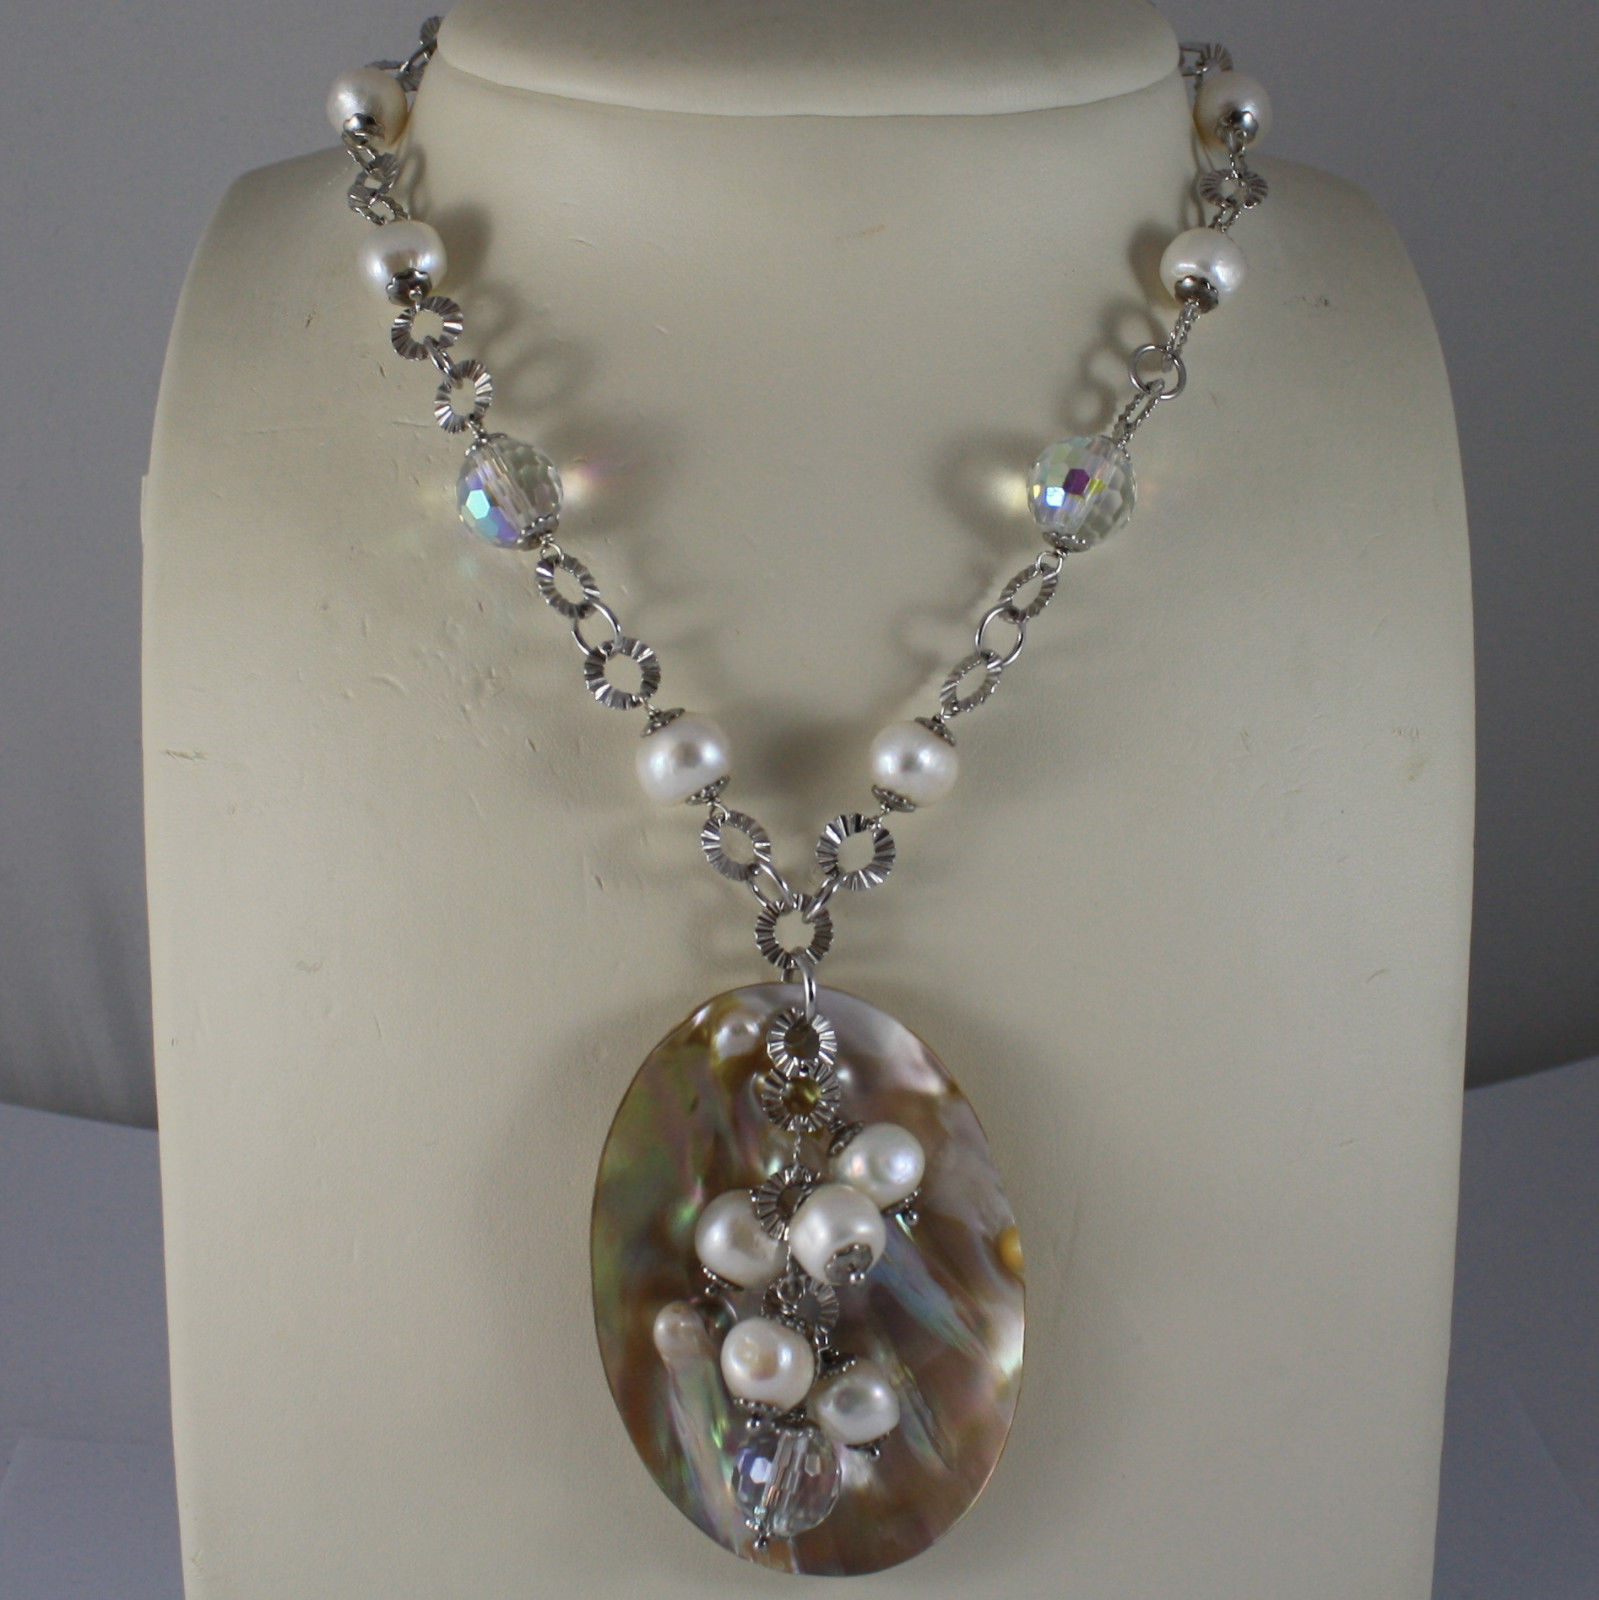 .925 SILVER RHODIUM NECKLACE WITH WHITE PEARLS, CRYSTALS AND MOTHER OF PEARL